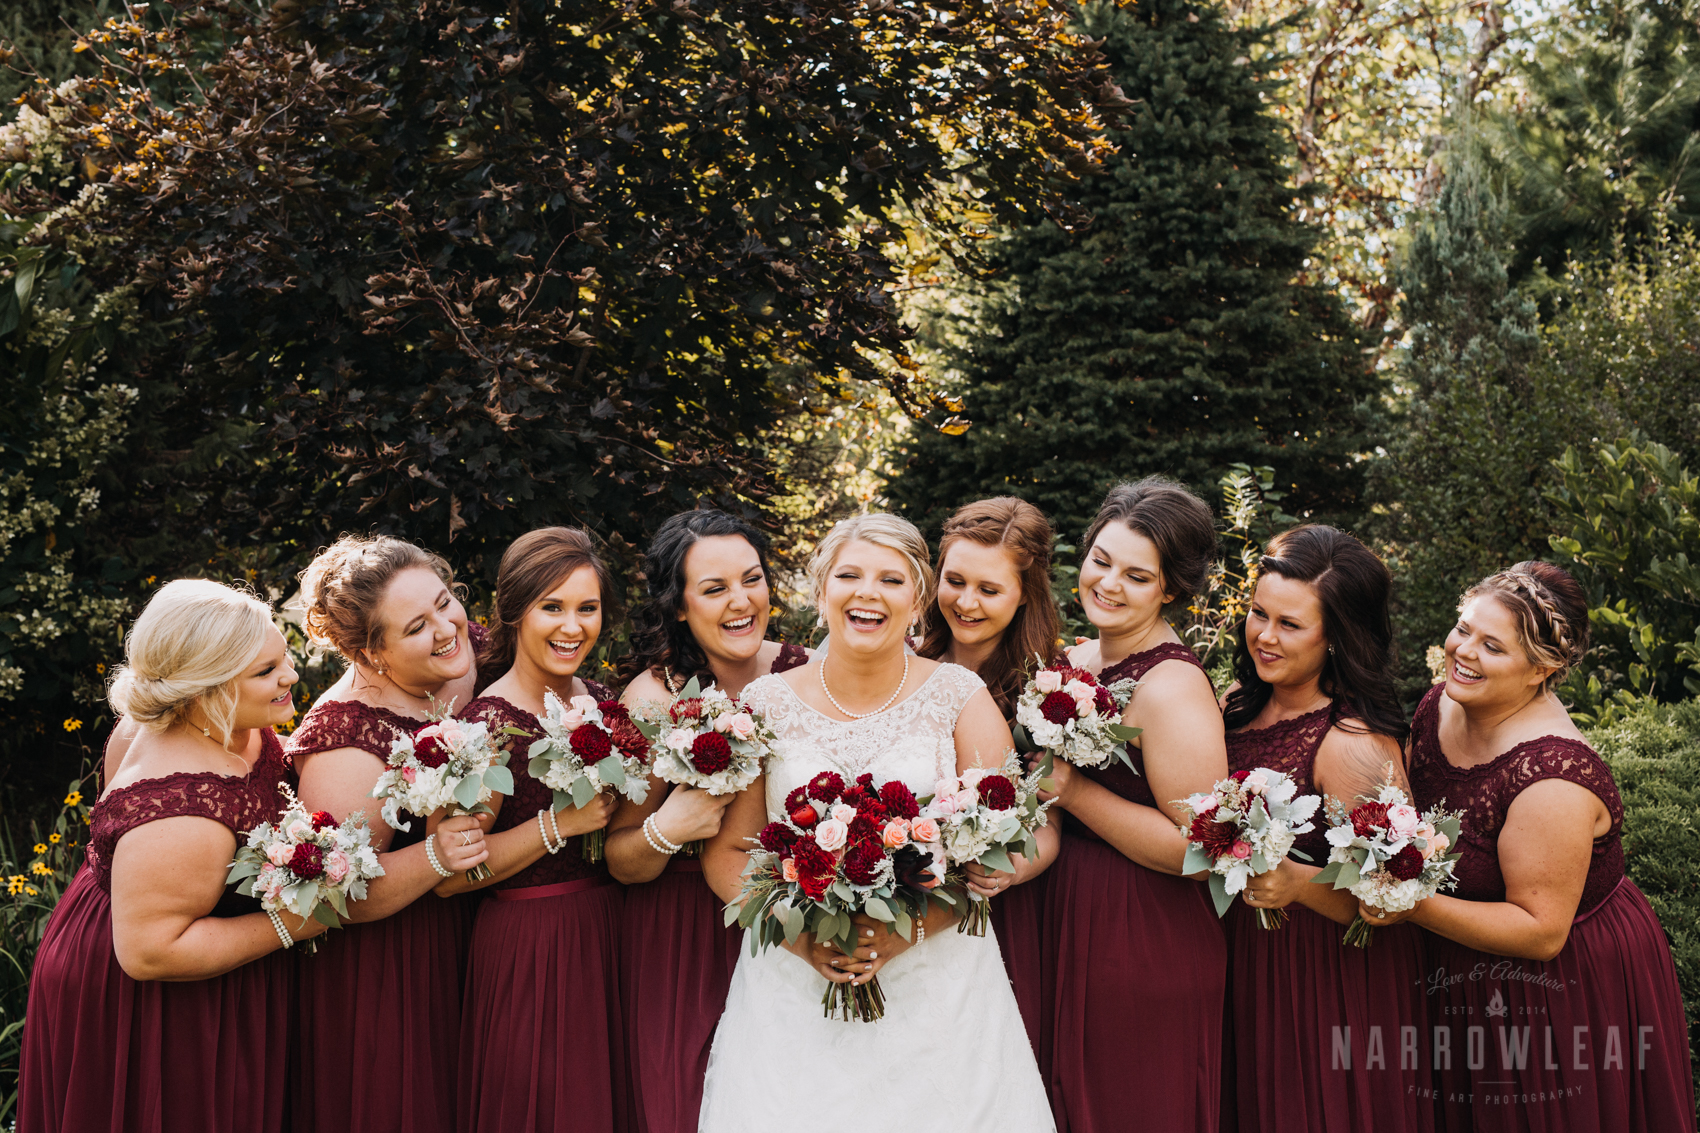 bridesmaids-maroon-dresses-florian-gardens-summer-wedding-wisconsin-89.jpg